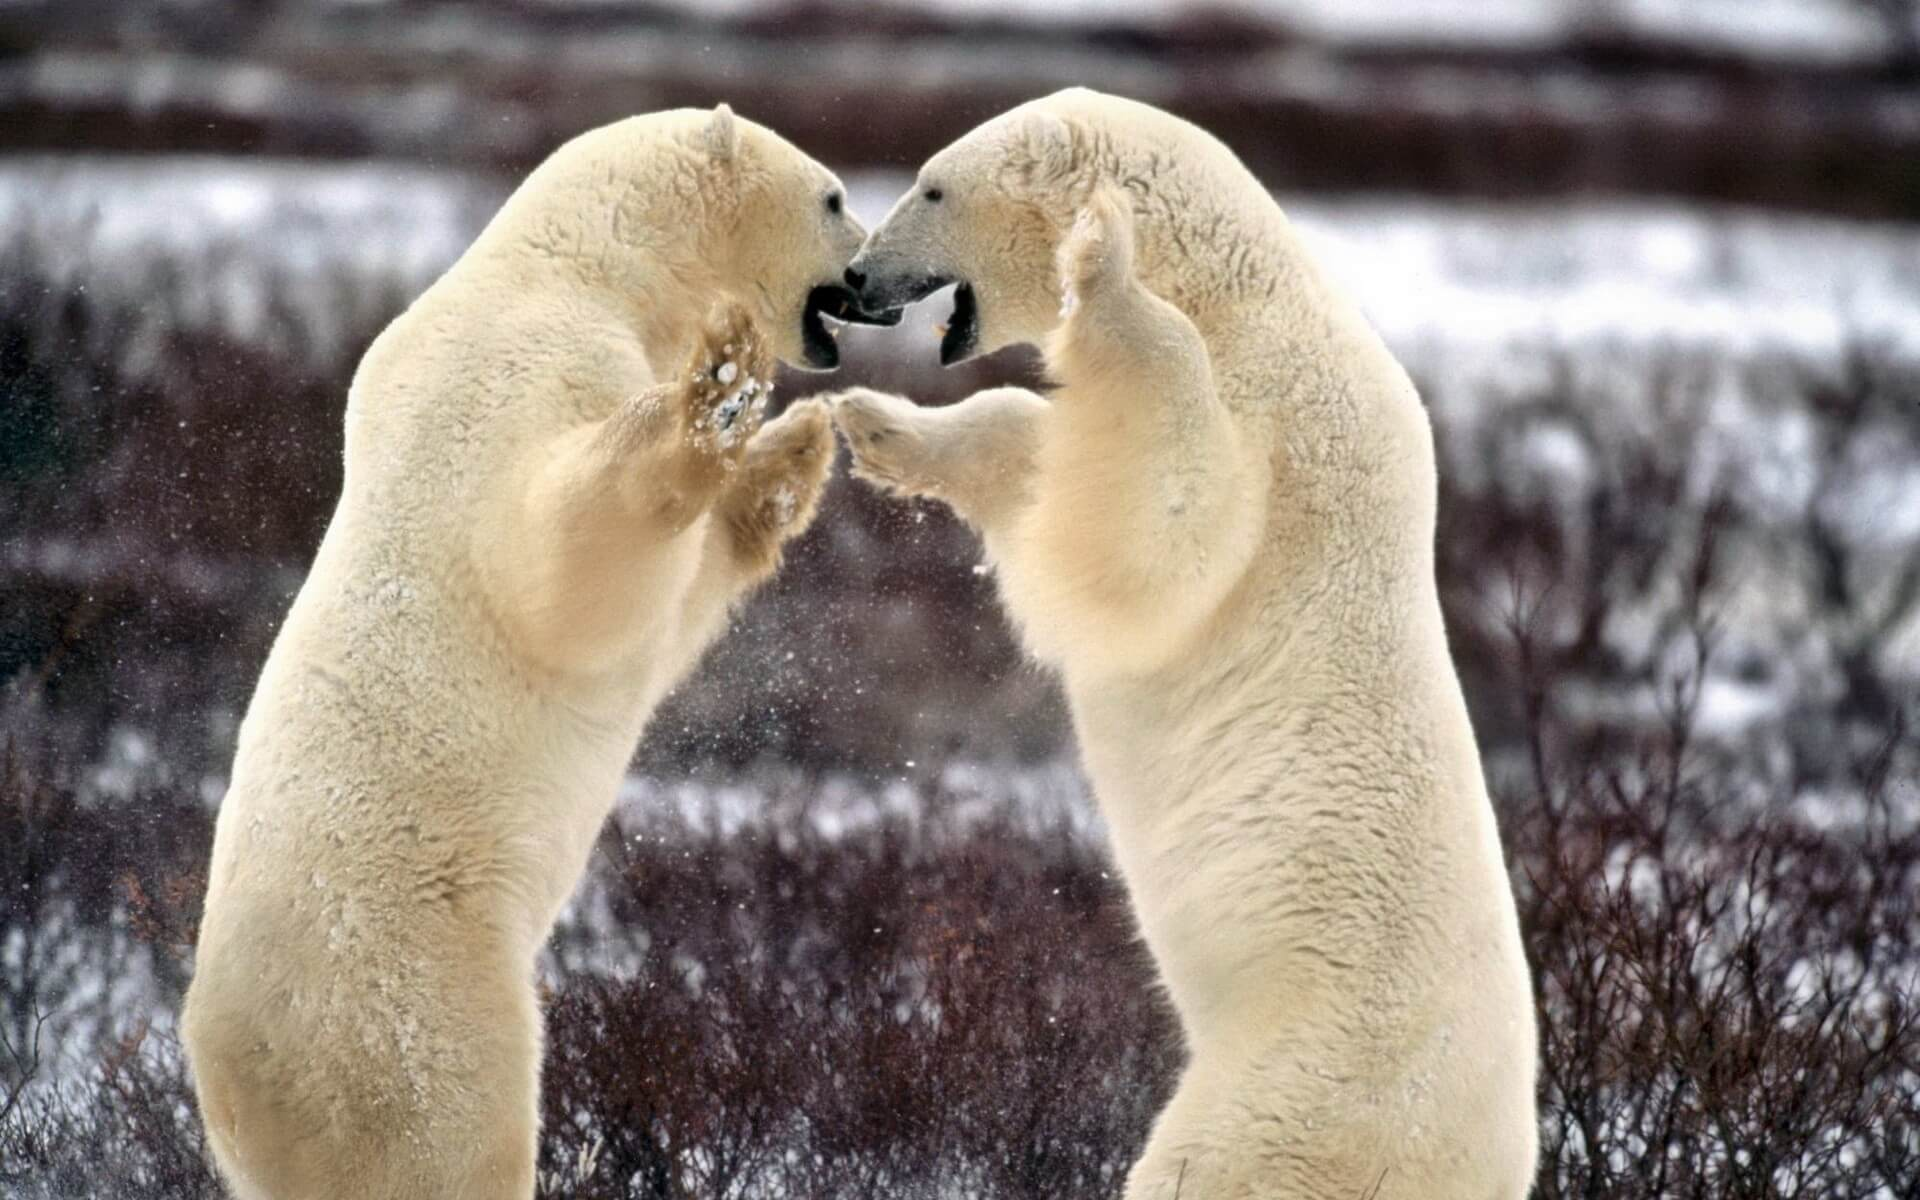 Battle of Polar Bears